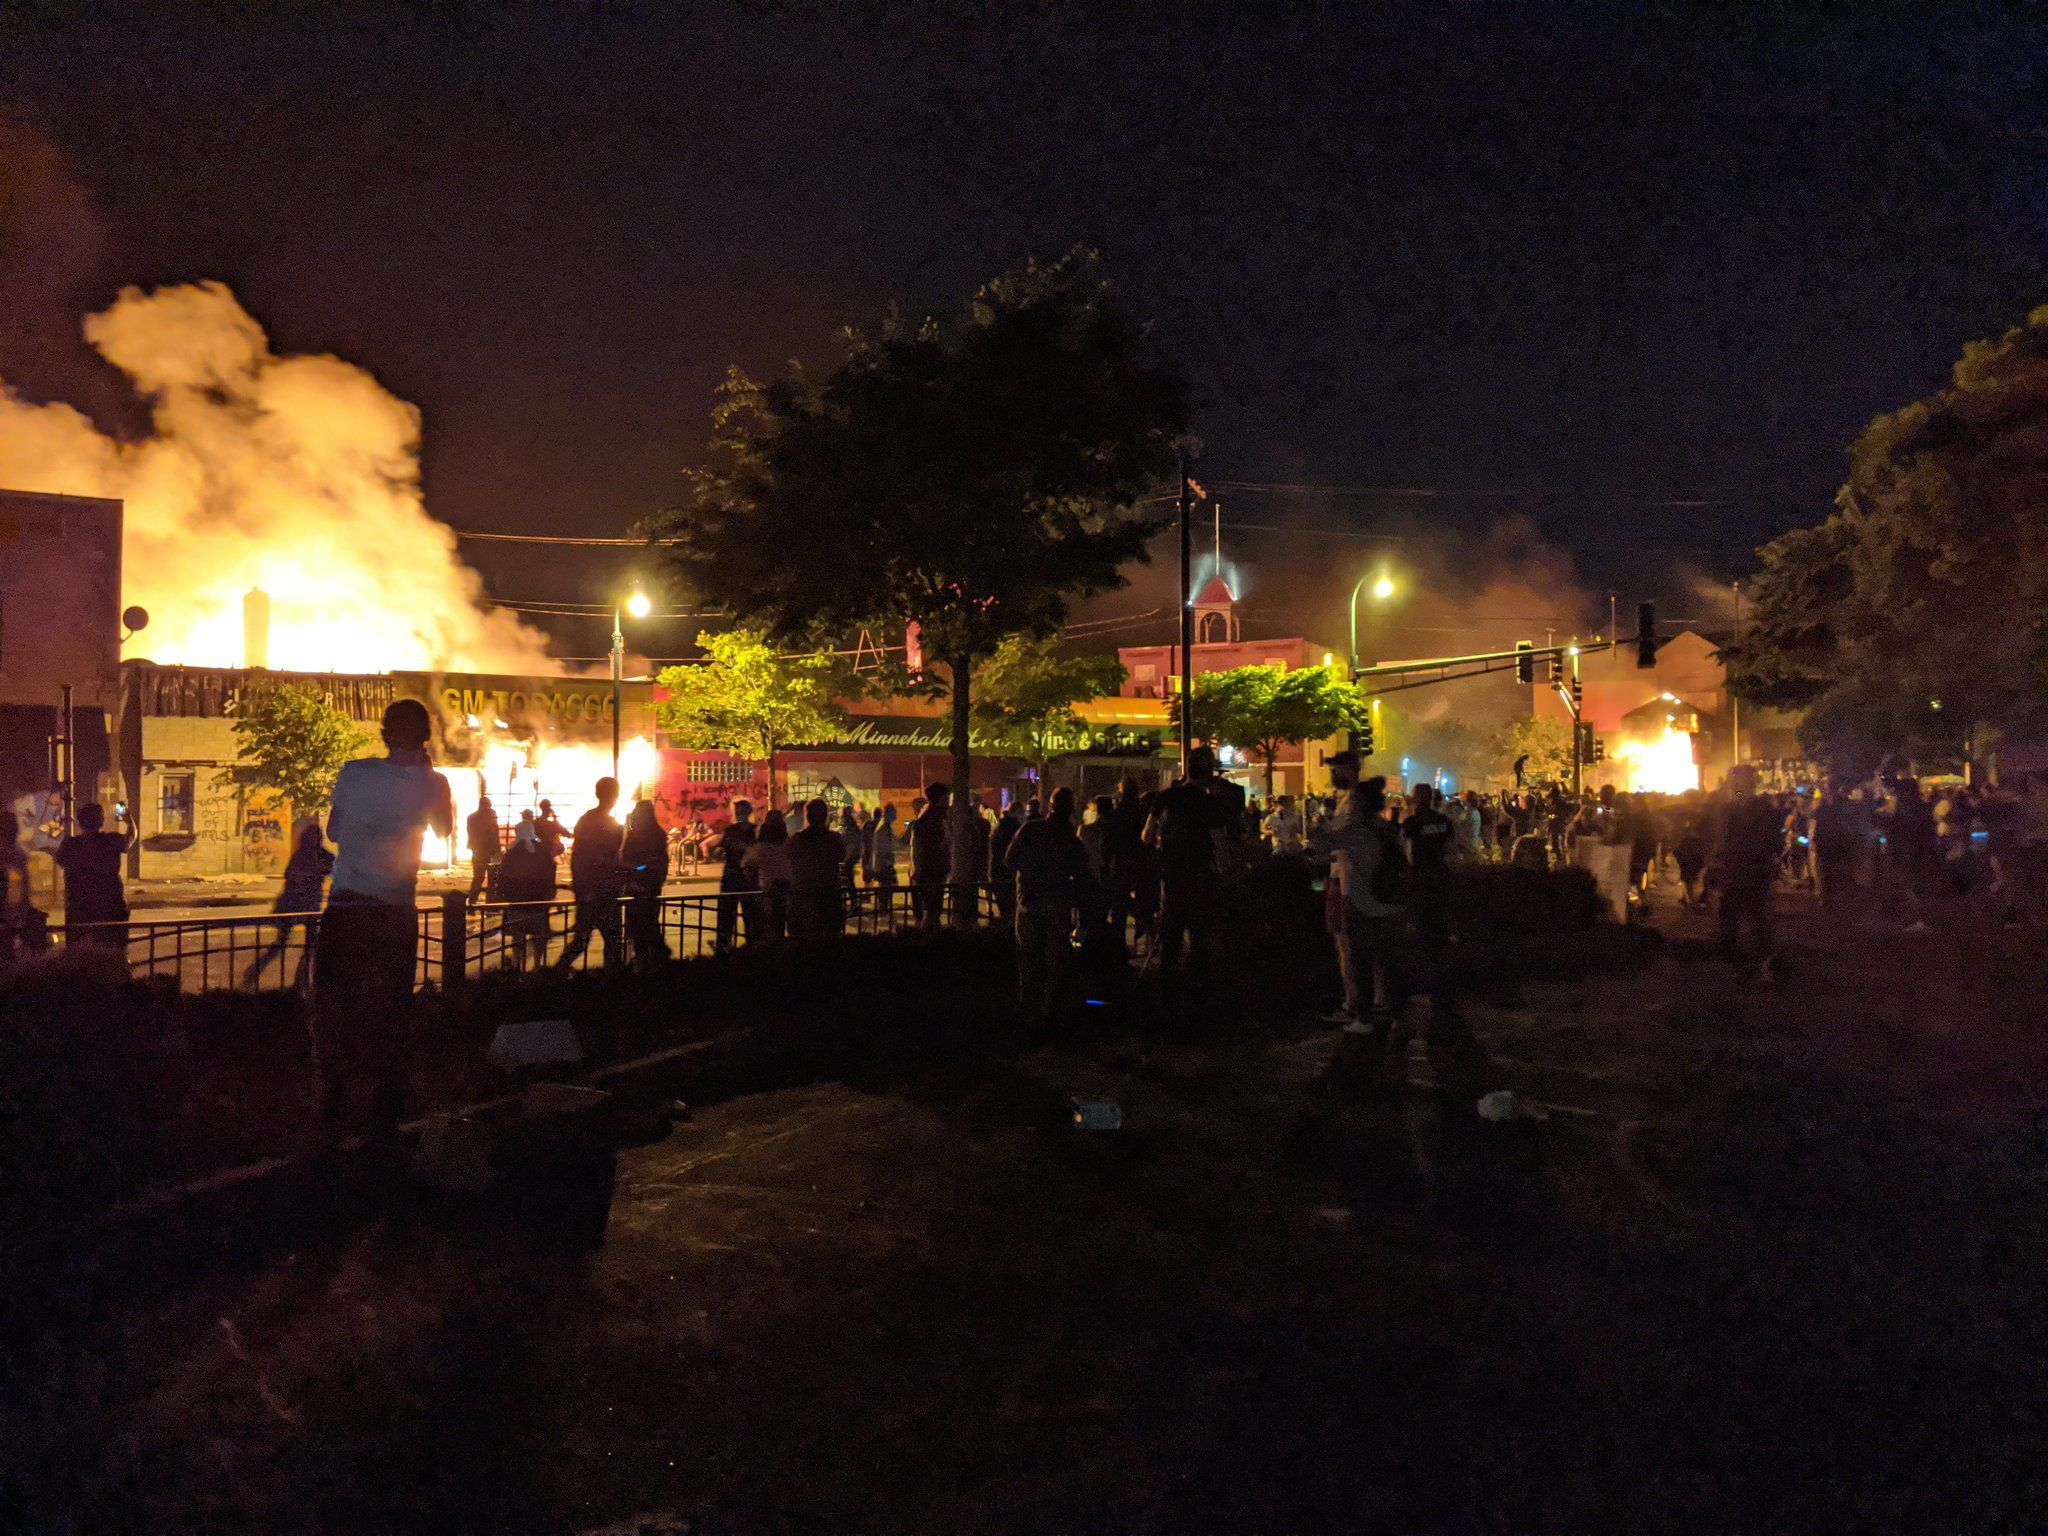 The Minneapolis Third Precinct police station was evacuated late Thursday night and then was engulfed in flames. Protesters cheered and lit fireworks to celebrate.